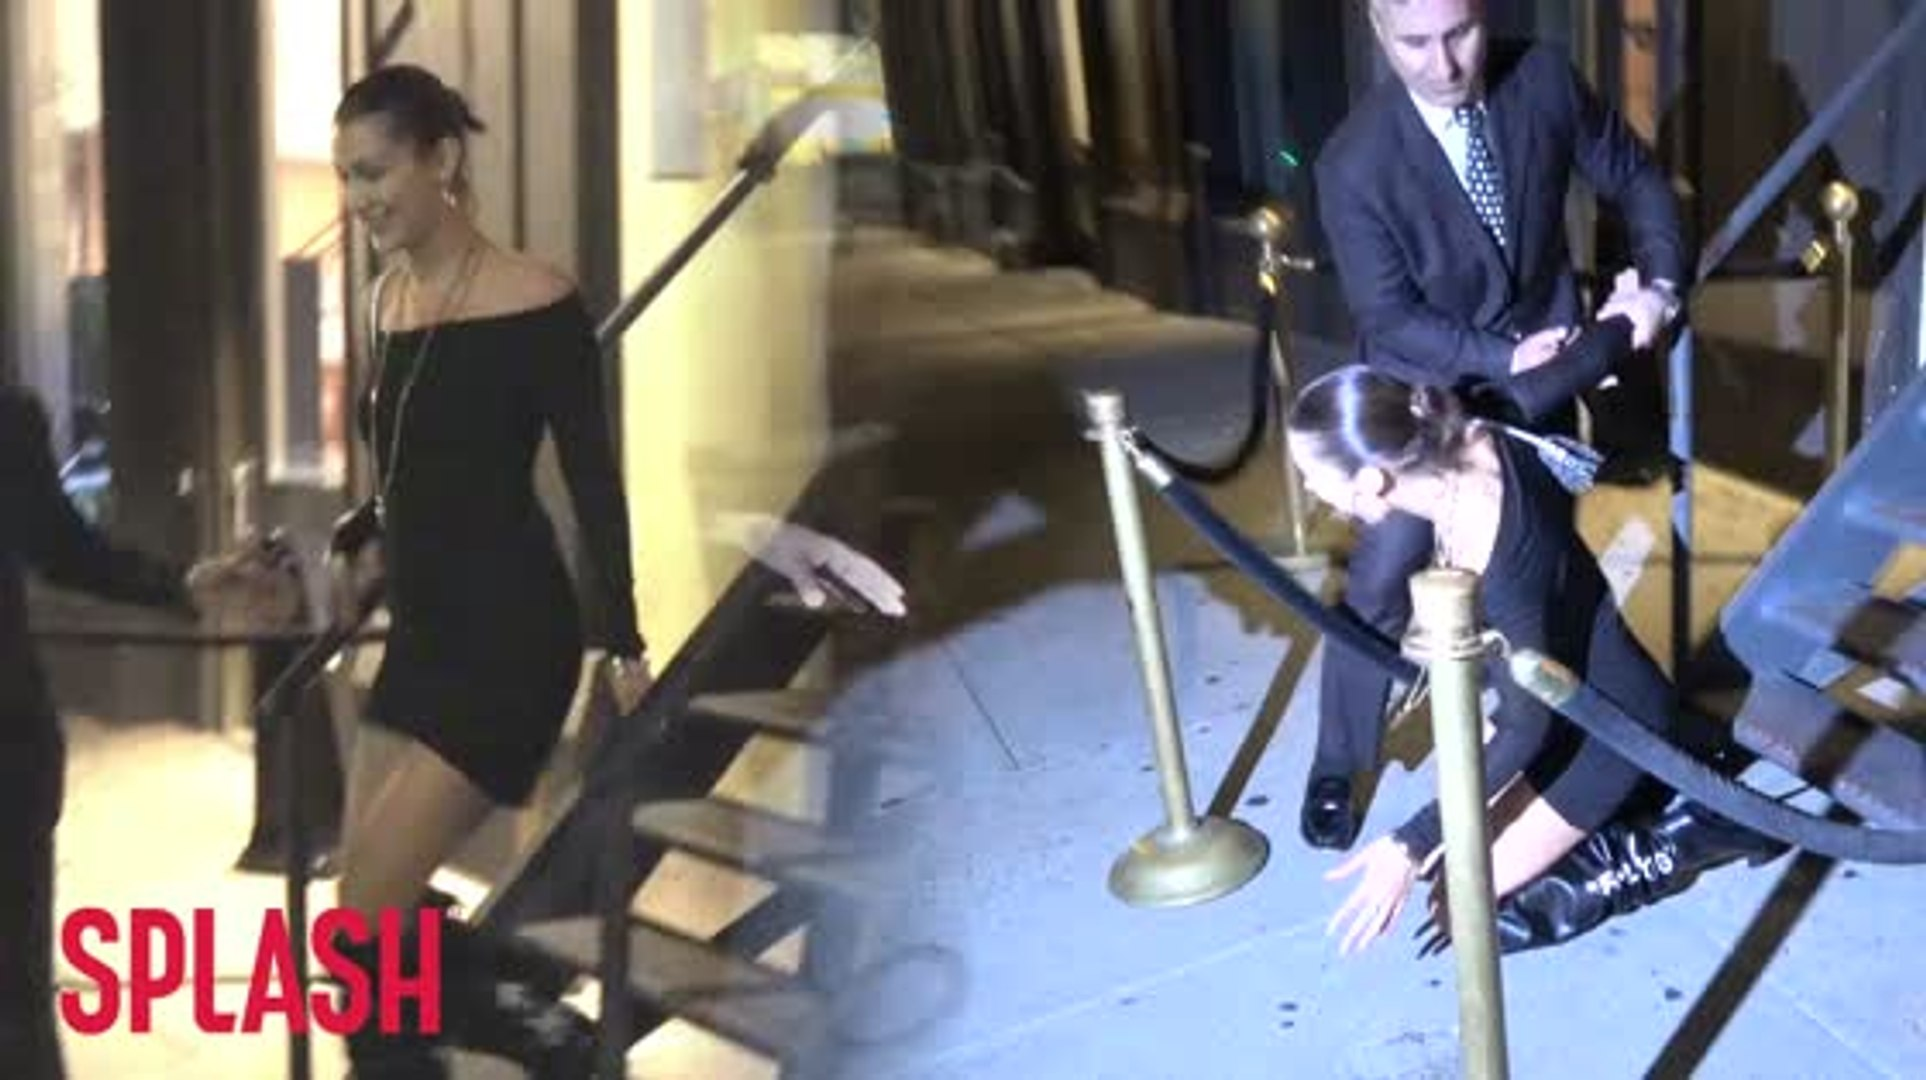 Bella Hadid's Not The Only Celebrity To Trip and Fall On Camera